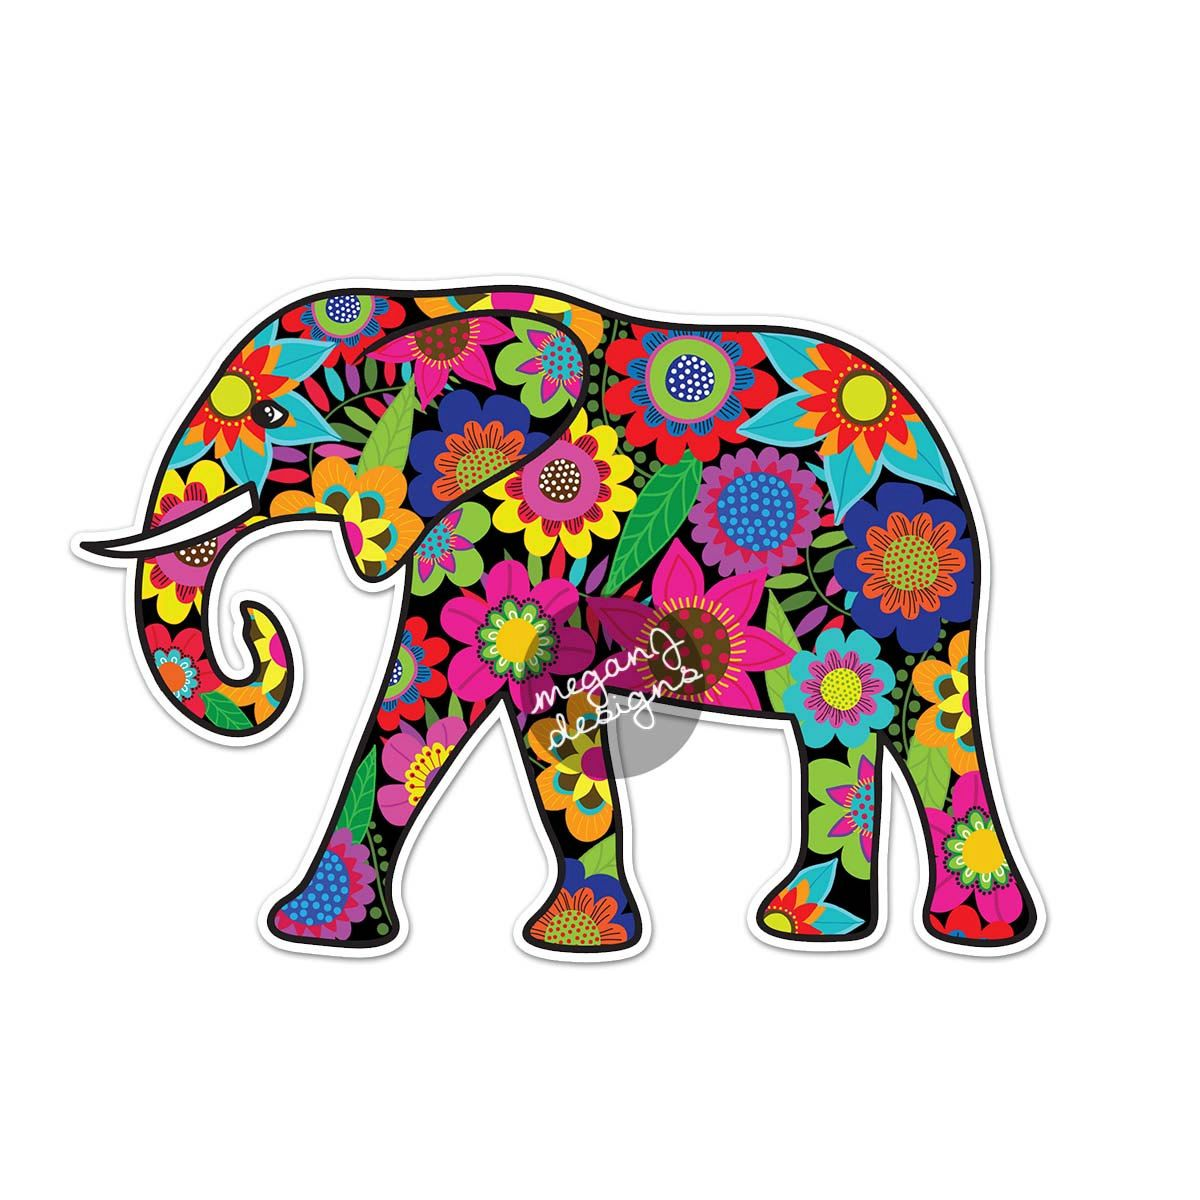 Elephant Car Decal Floral Colorful Bumper Sticker Laptop Decal Pink Green Teal Yellow Jungle Flowers Cute Ca Cute Car Decals Elephant Stickers Car Decal Hippie [ 1200 x 1200 Pixel ]